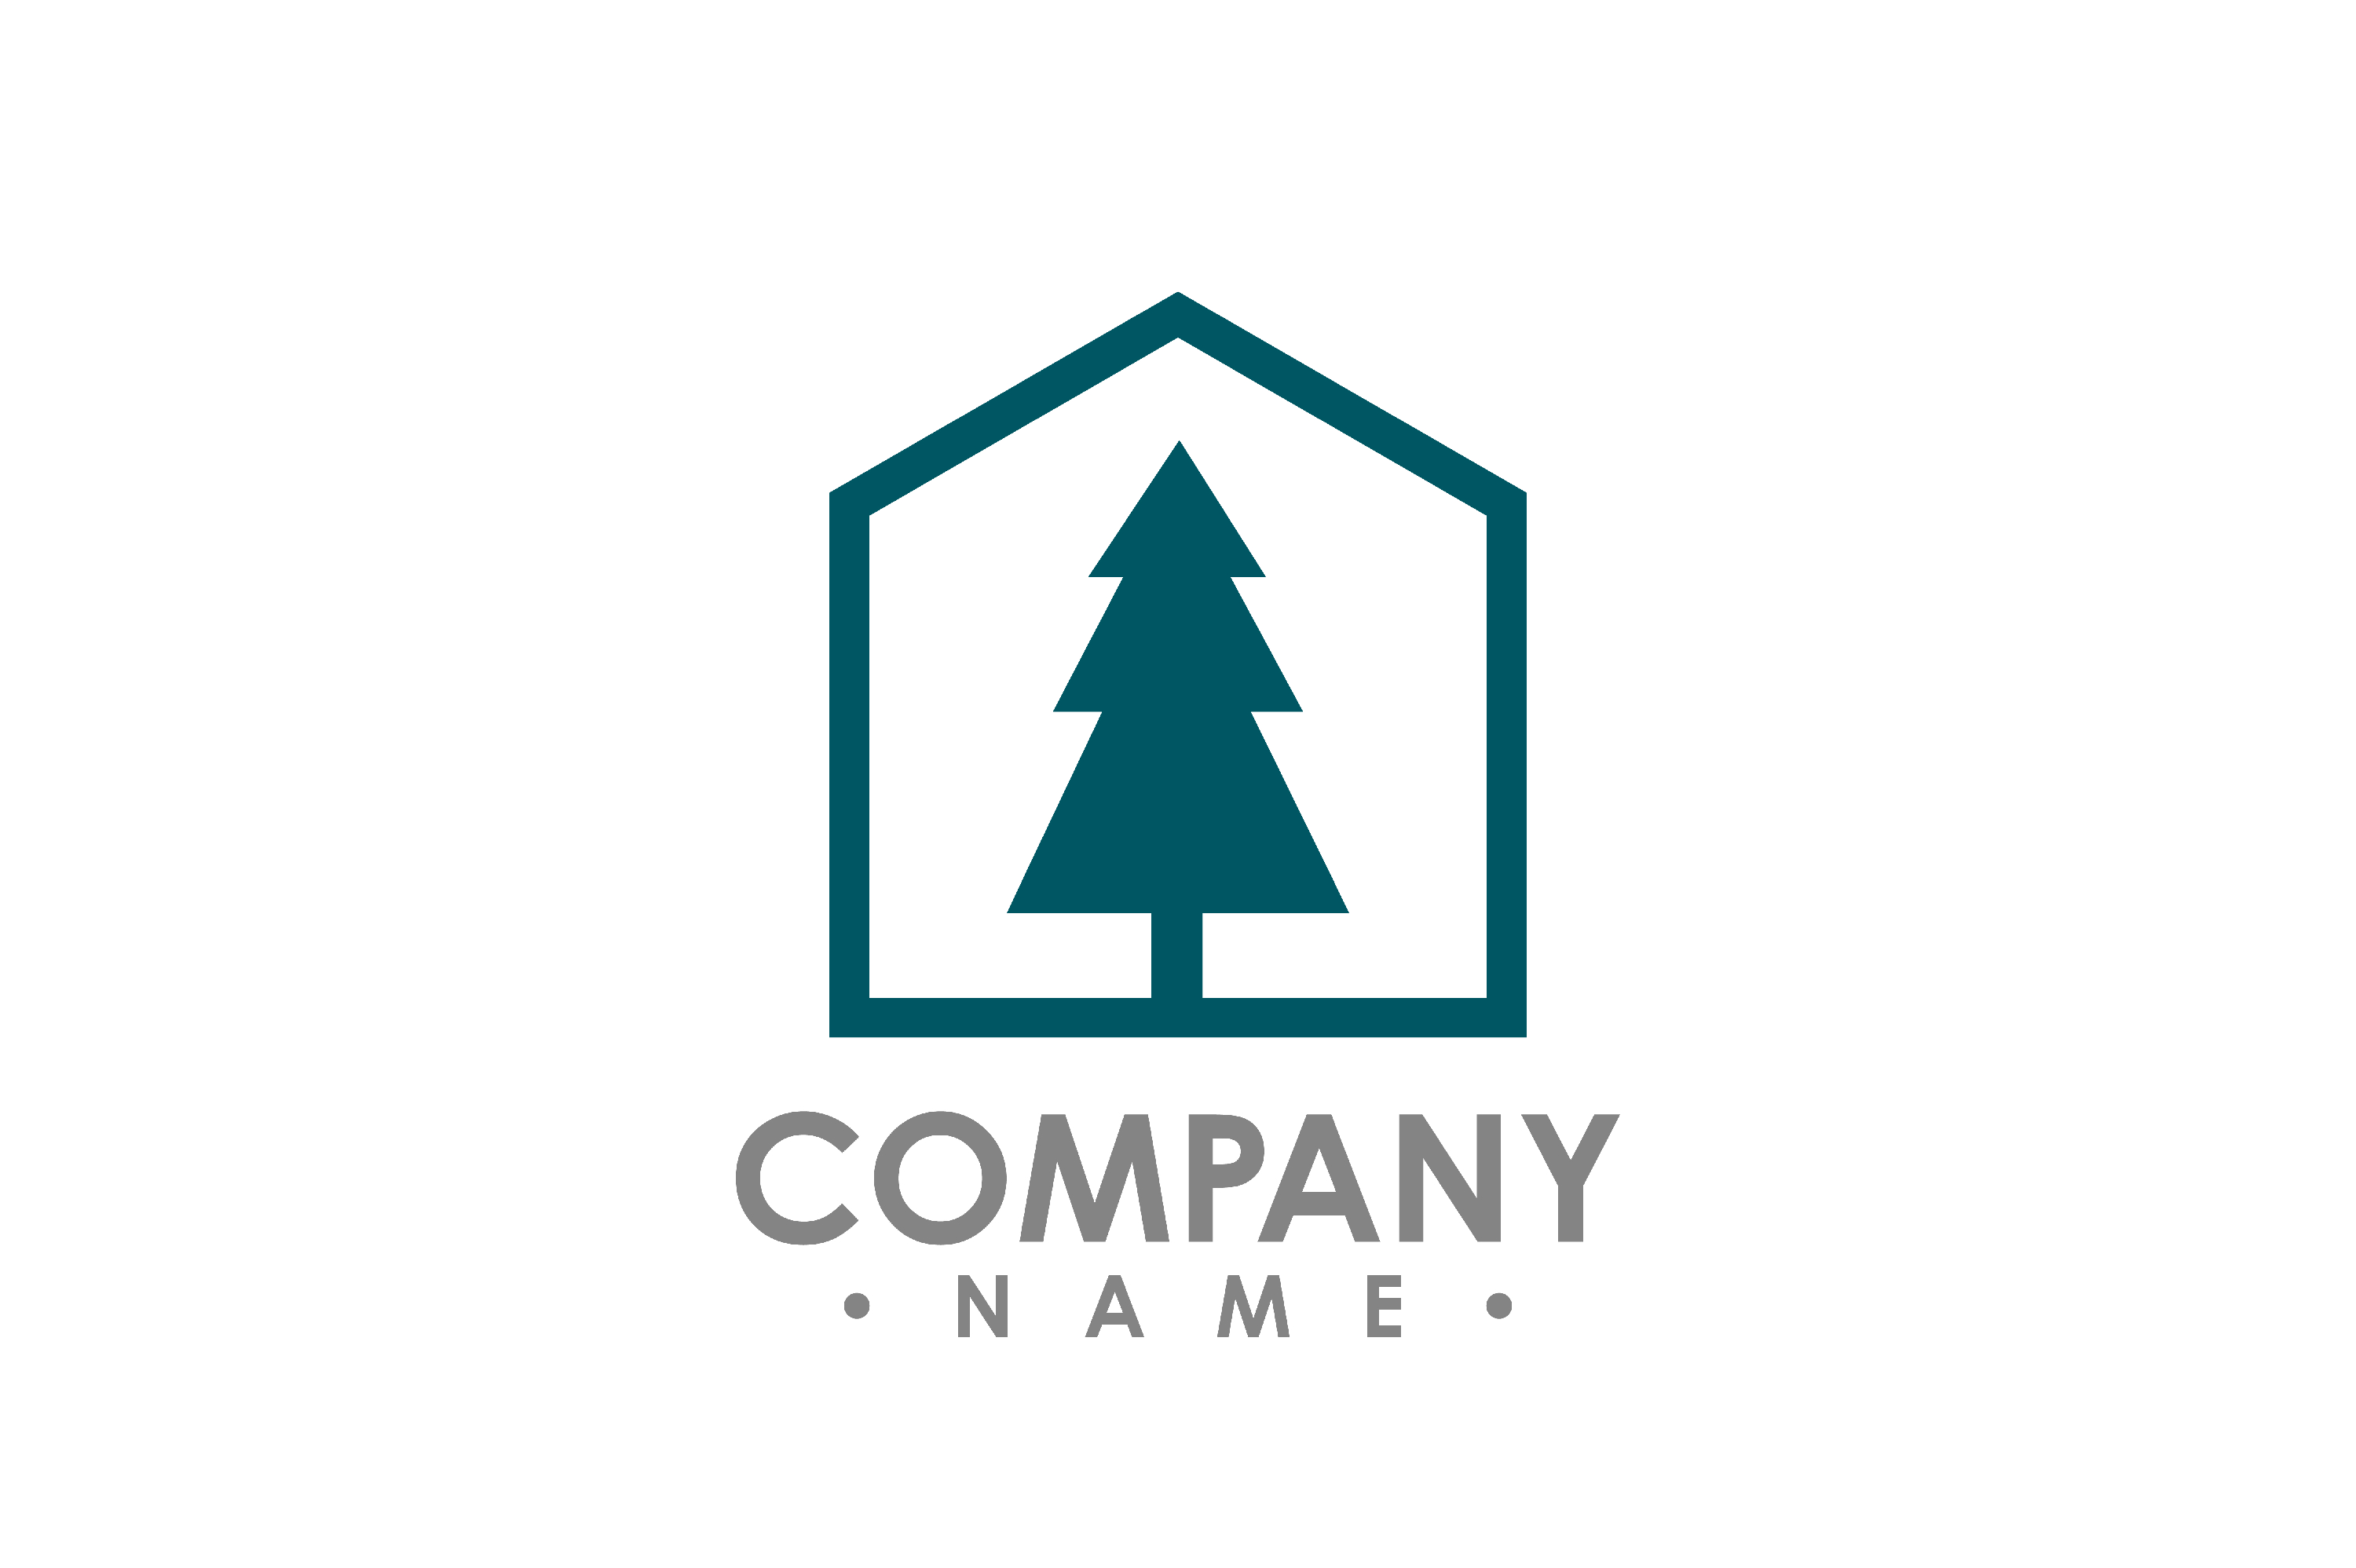 Pine Tree outdoor travel green silhouette forest logo.